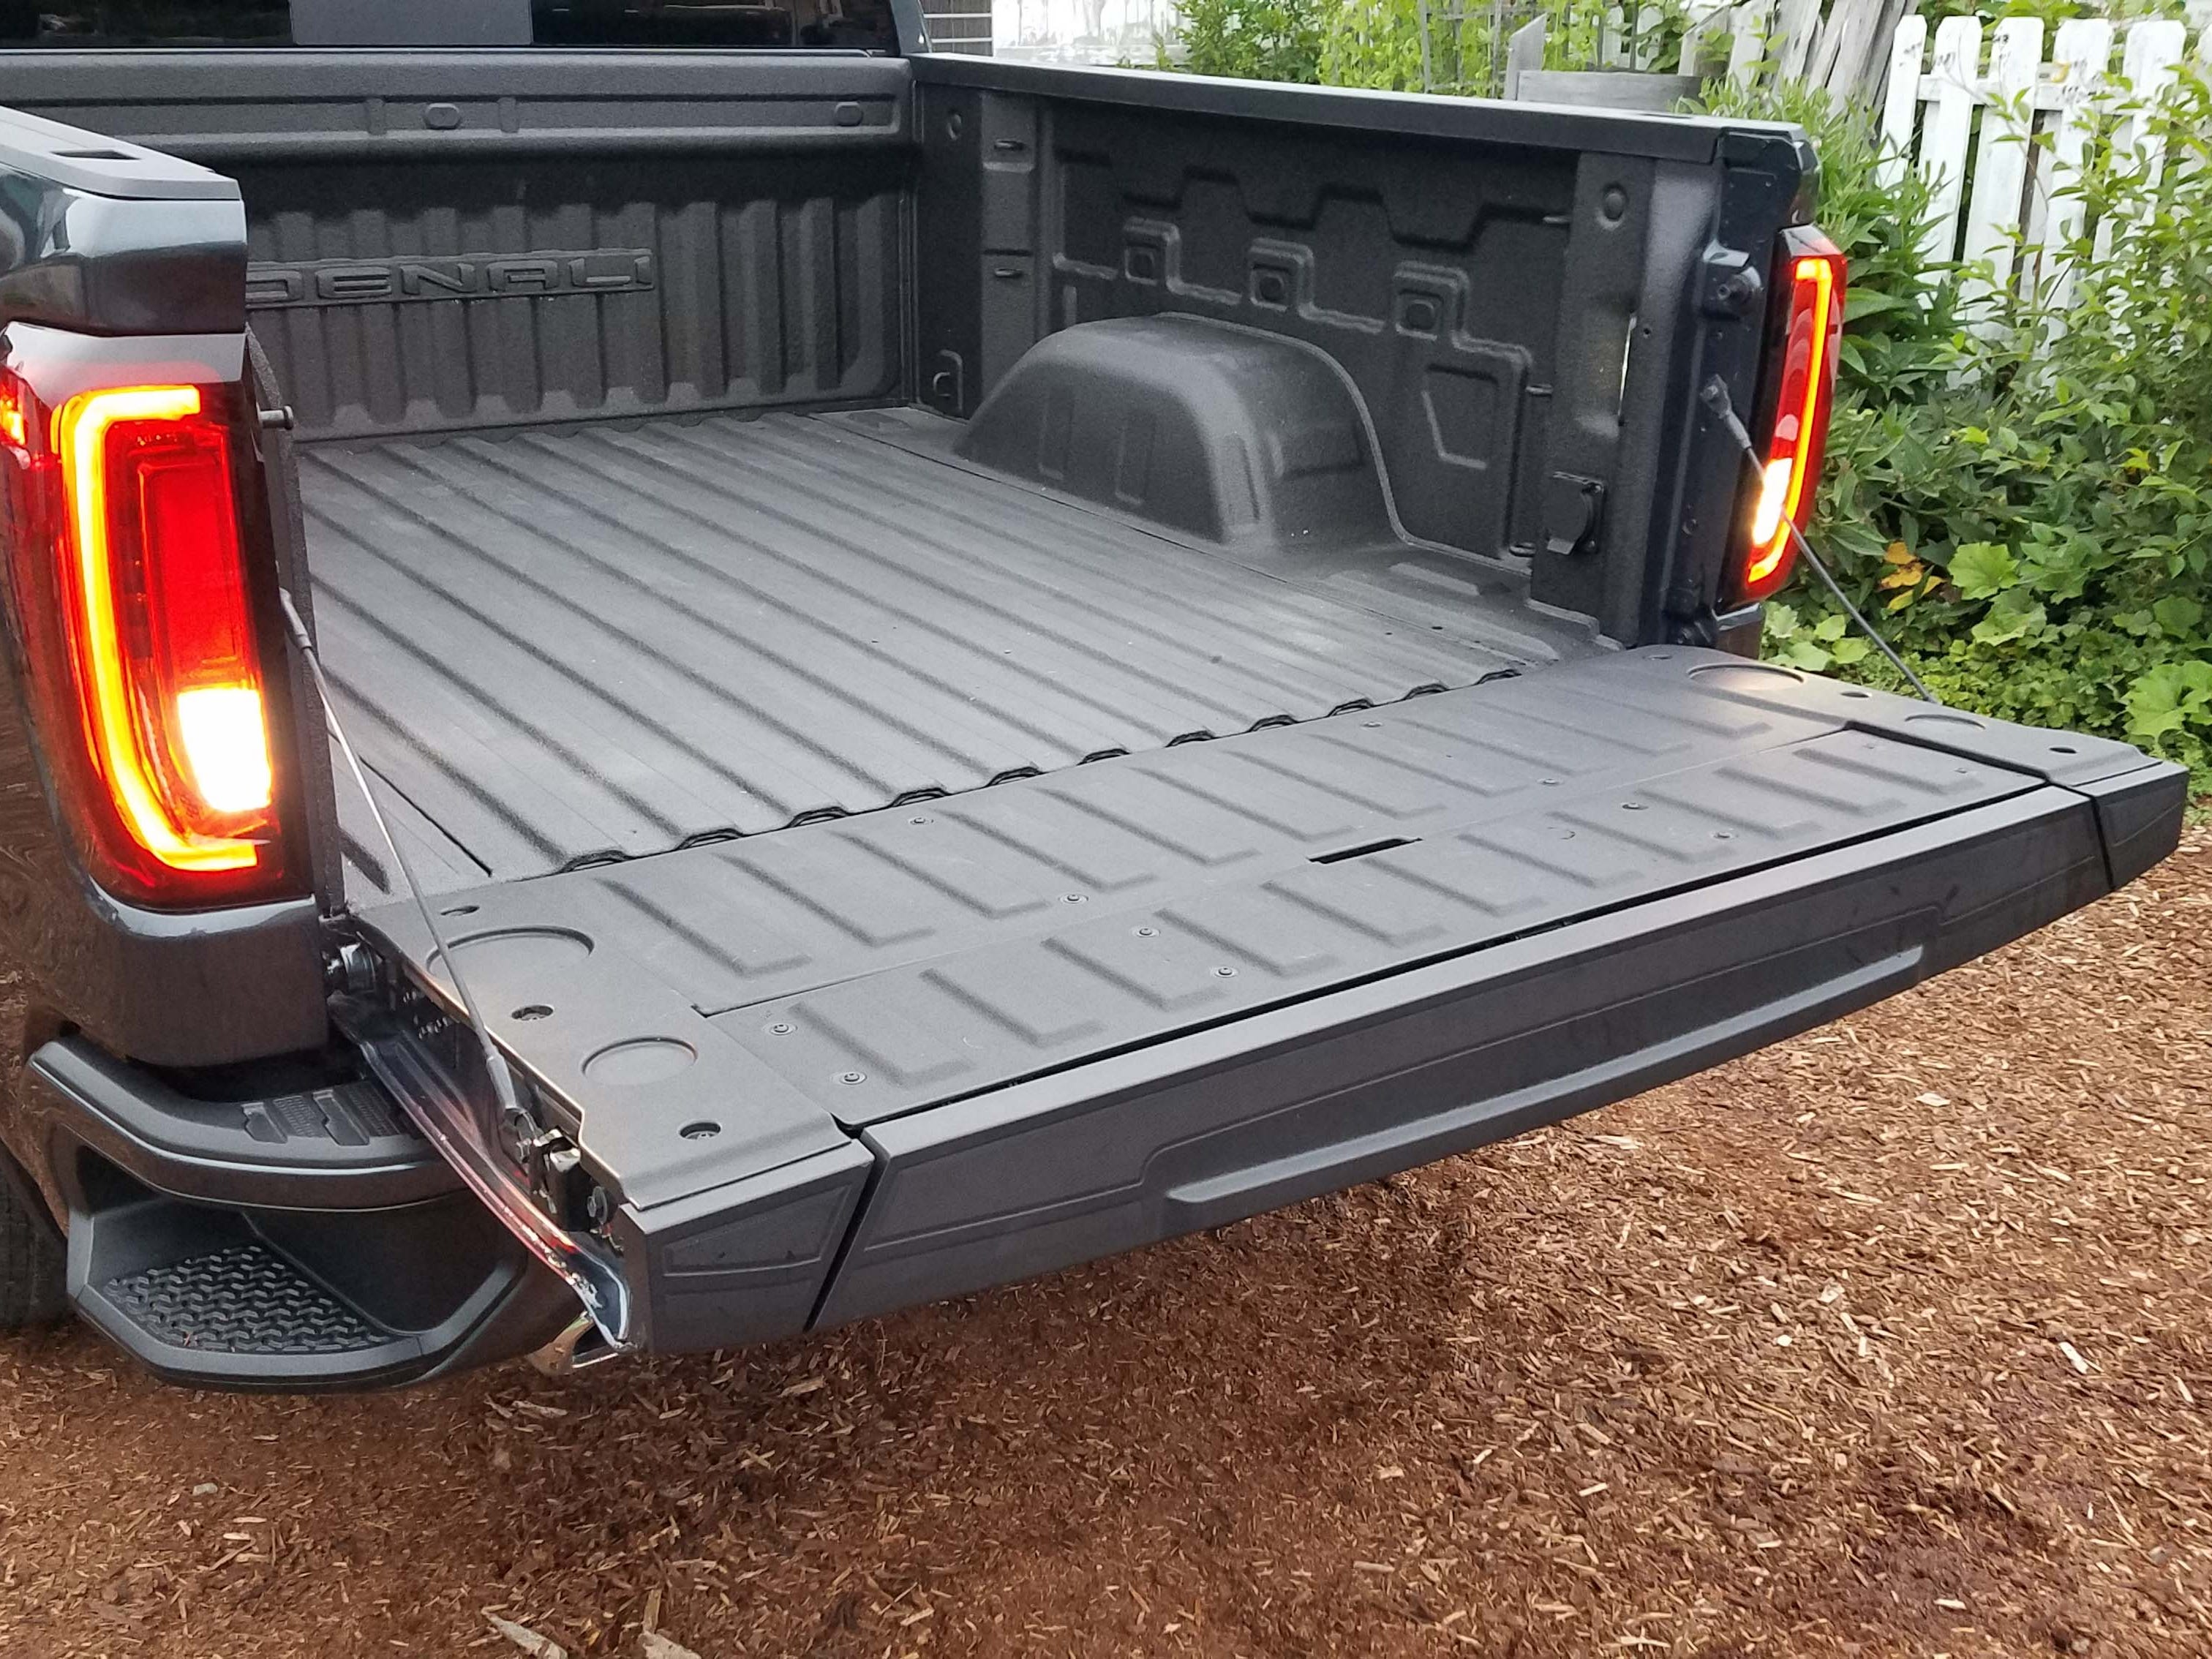 GMC Sierra MultiPro tailgate, Step 3: The full gate drops slowly on ropes, opening like a standard pickup (Sierra leaves the new, auto-close trick to Silverado.)